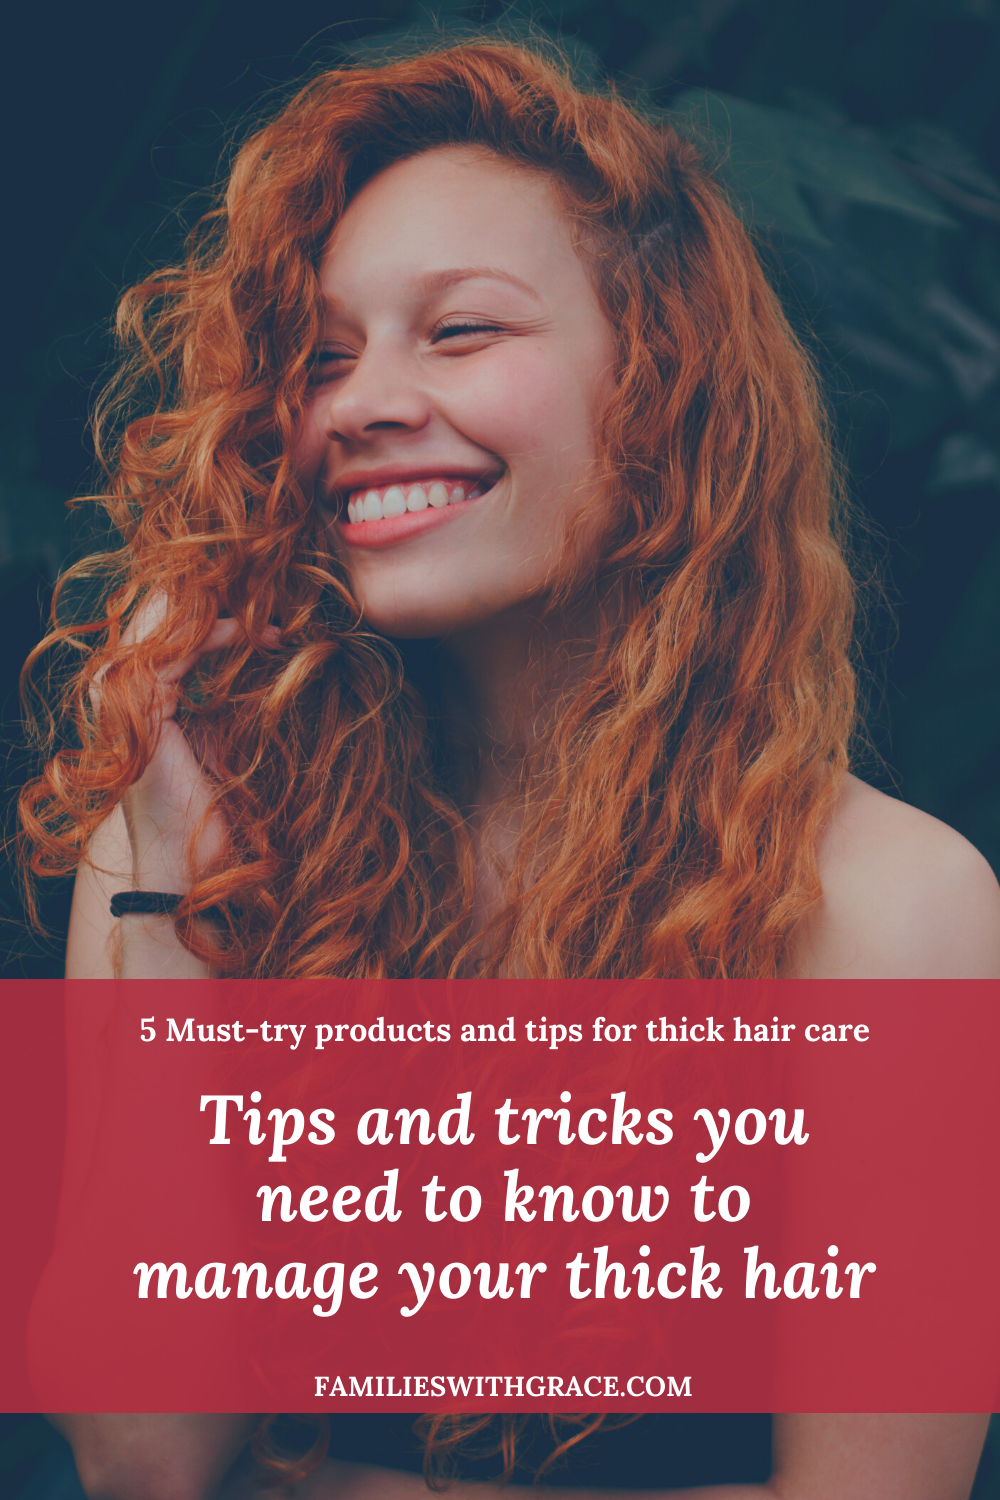 Tips and tricks you need to know to manage your thick hair